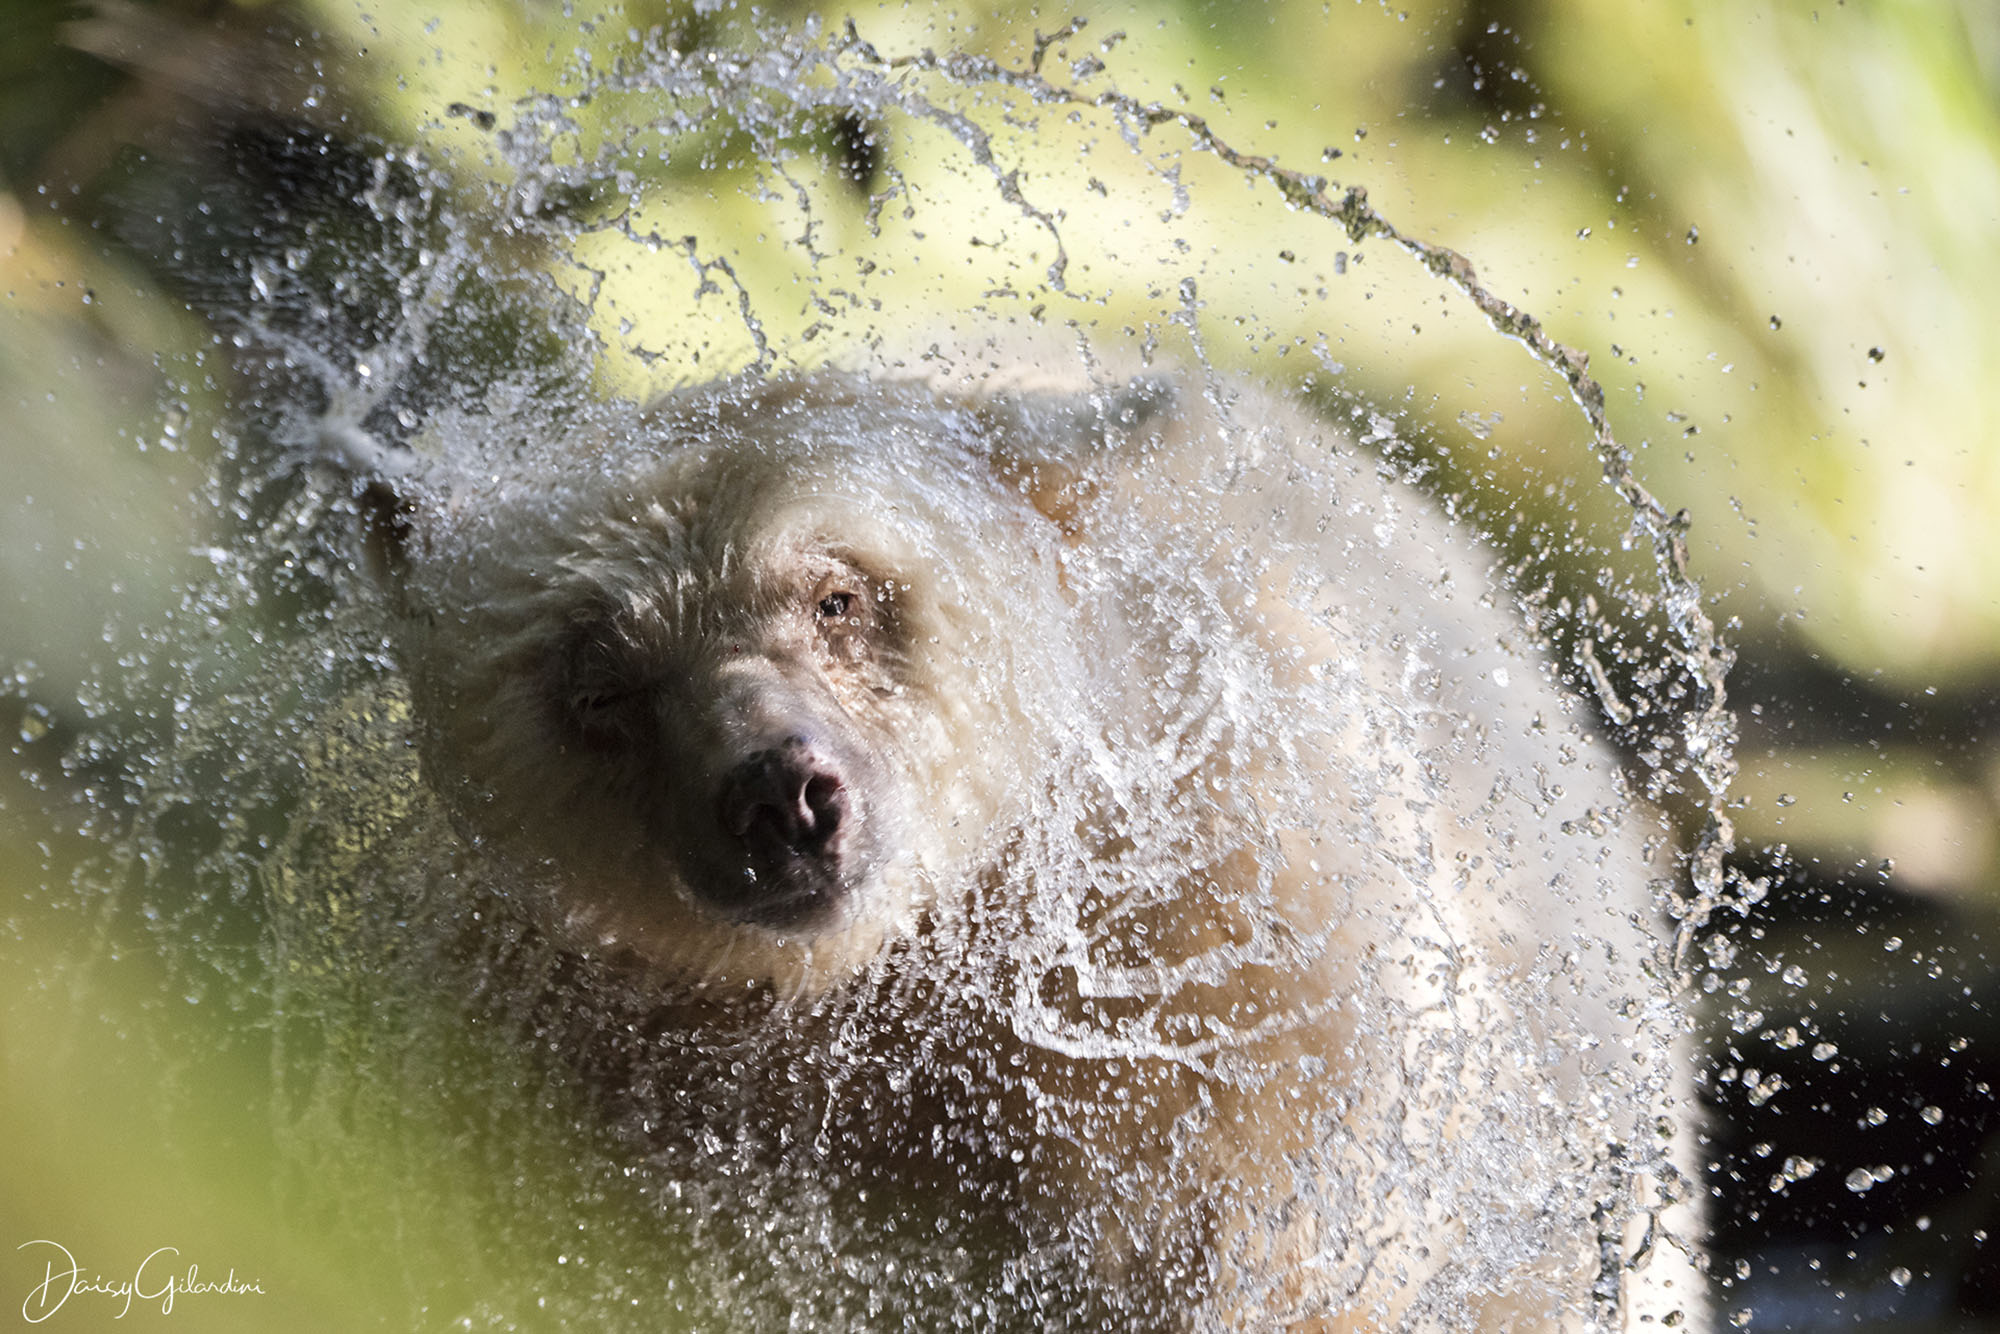 Spirit bear drying off in forest (Daisy Gilardini)